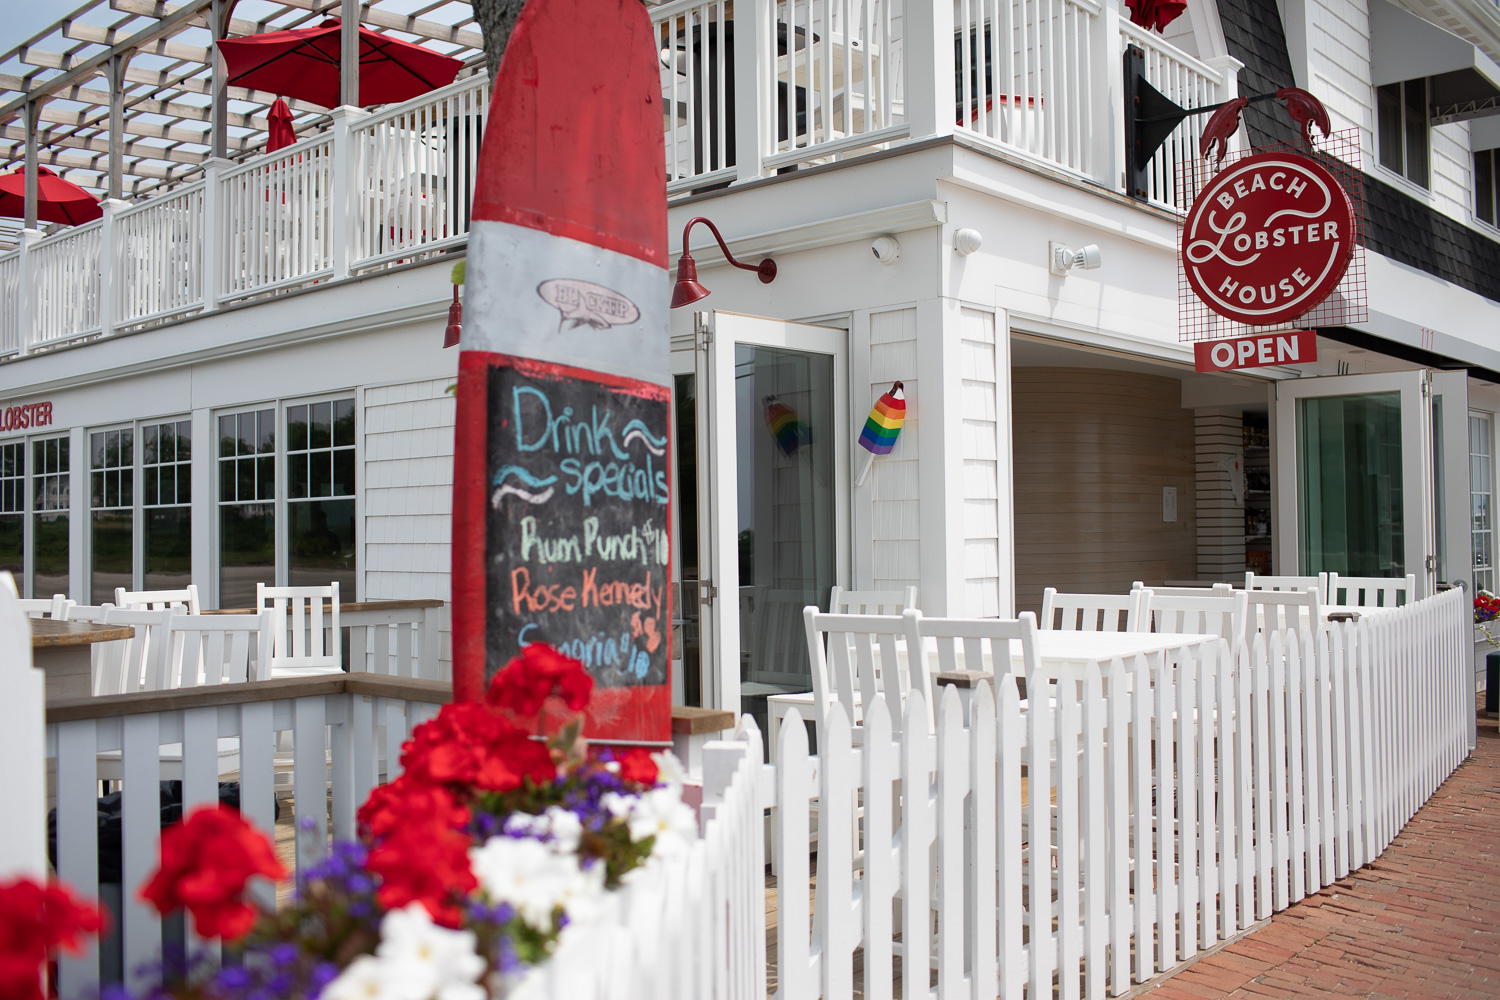 Ogunquit Beach Lobster House.